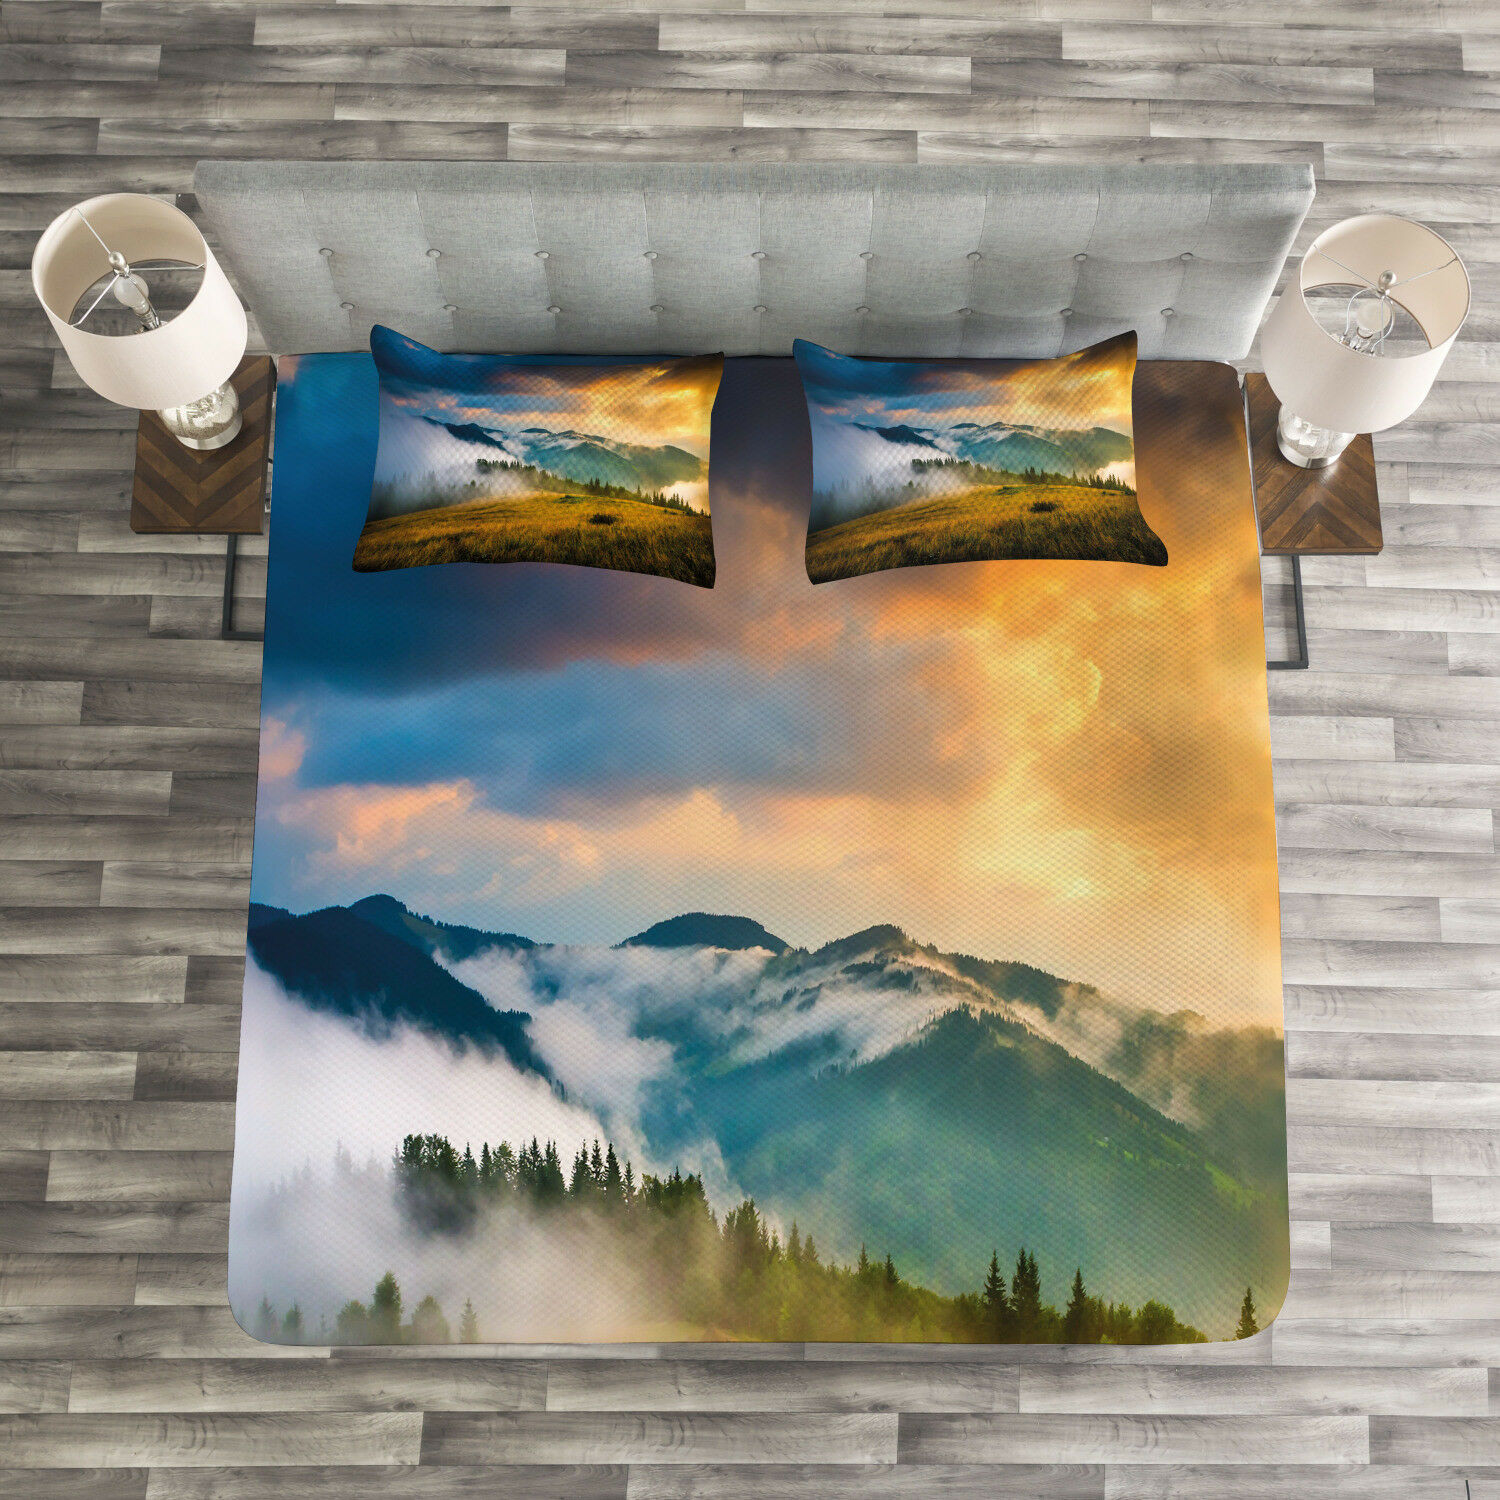 Landscape Quilted Bedspread & Pillow Shams Set, Misty Mountaintops Print